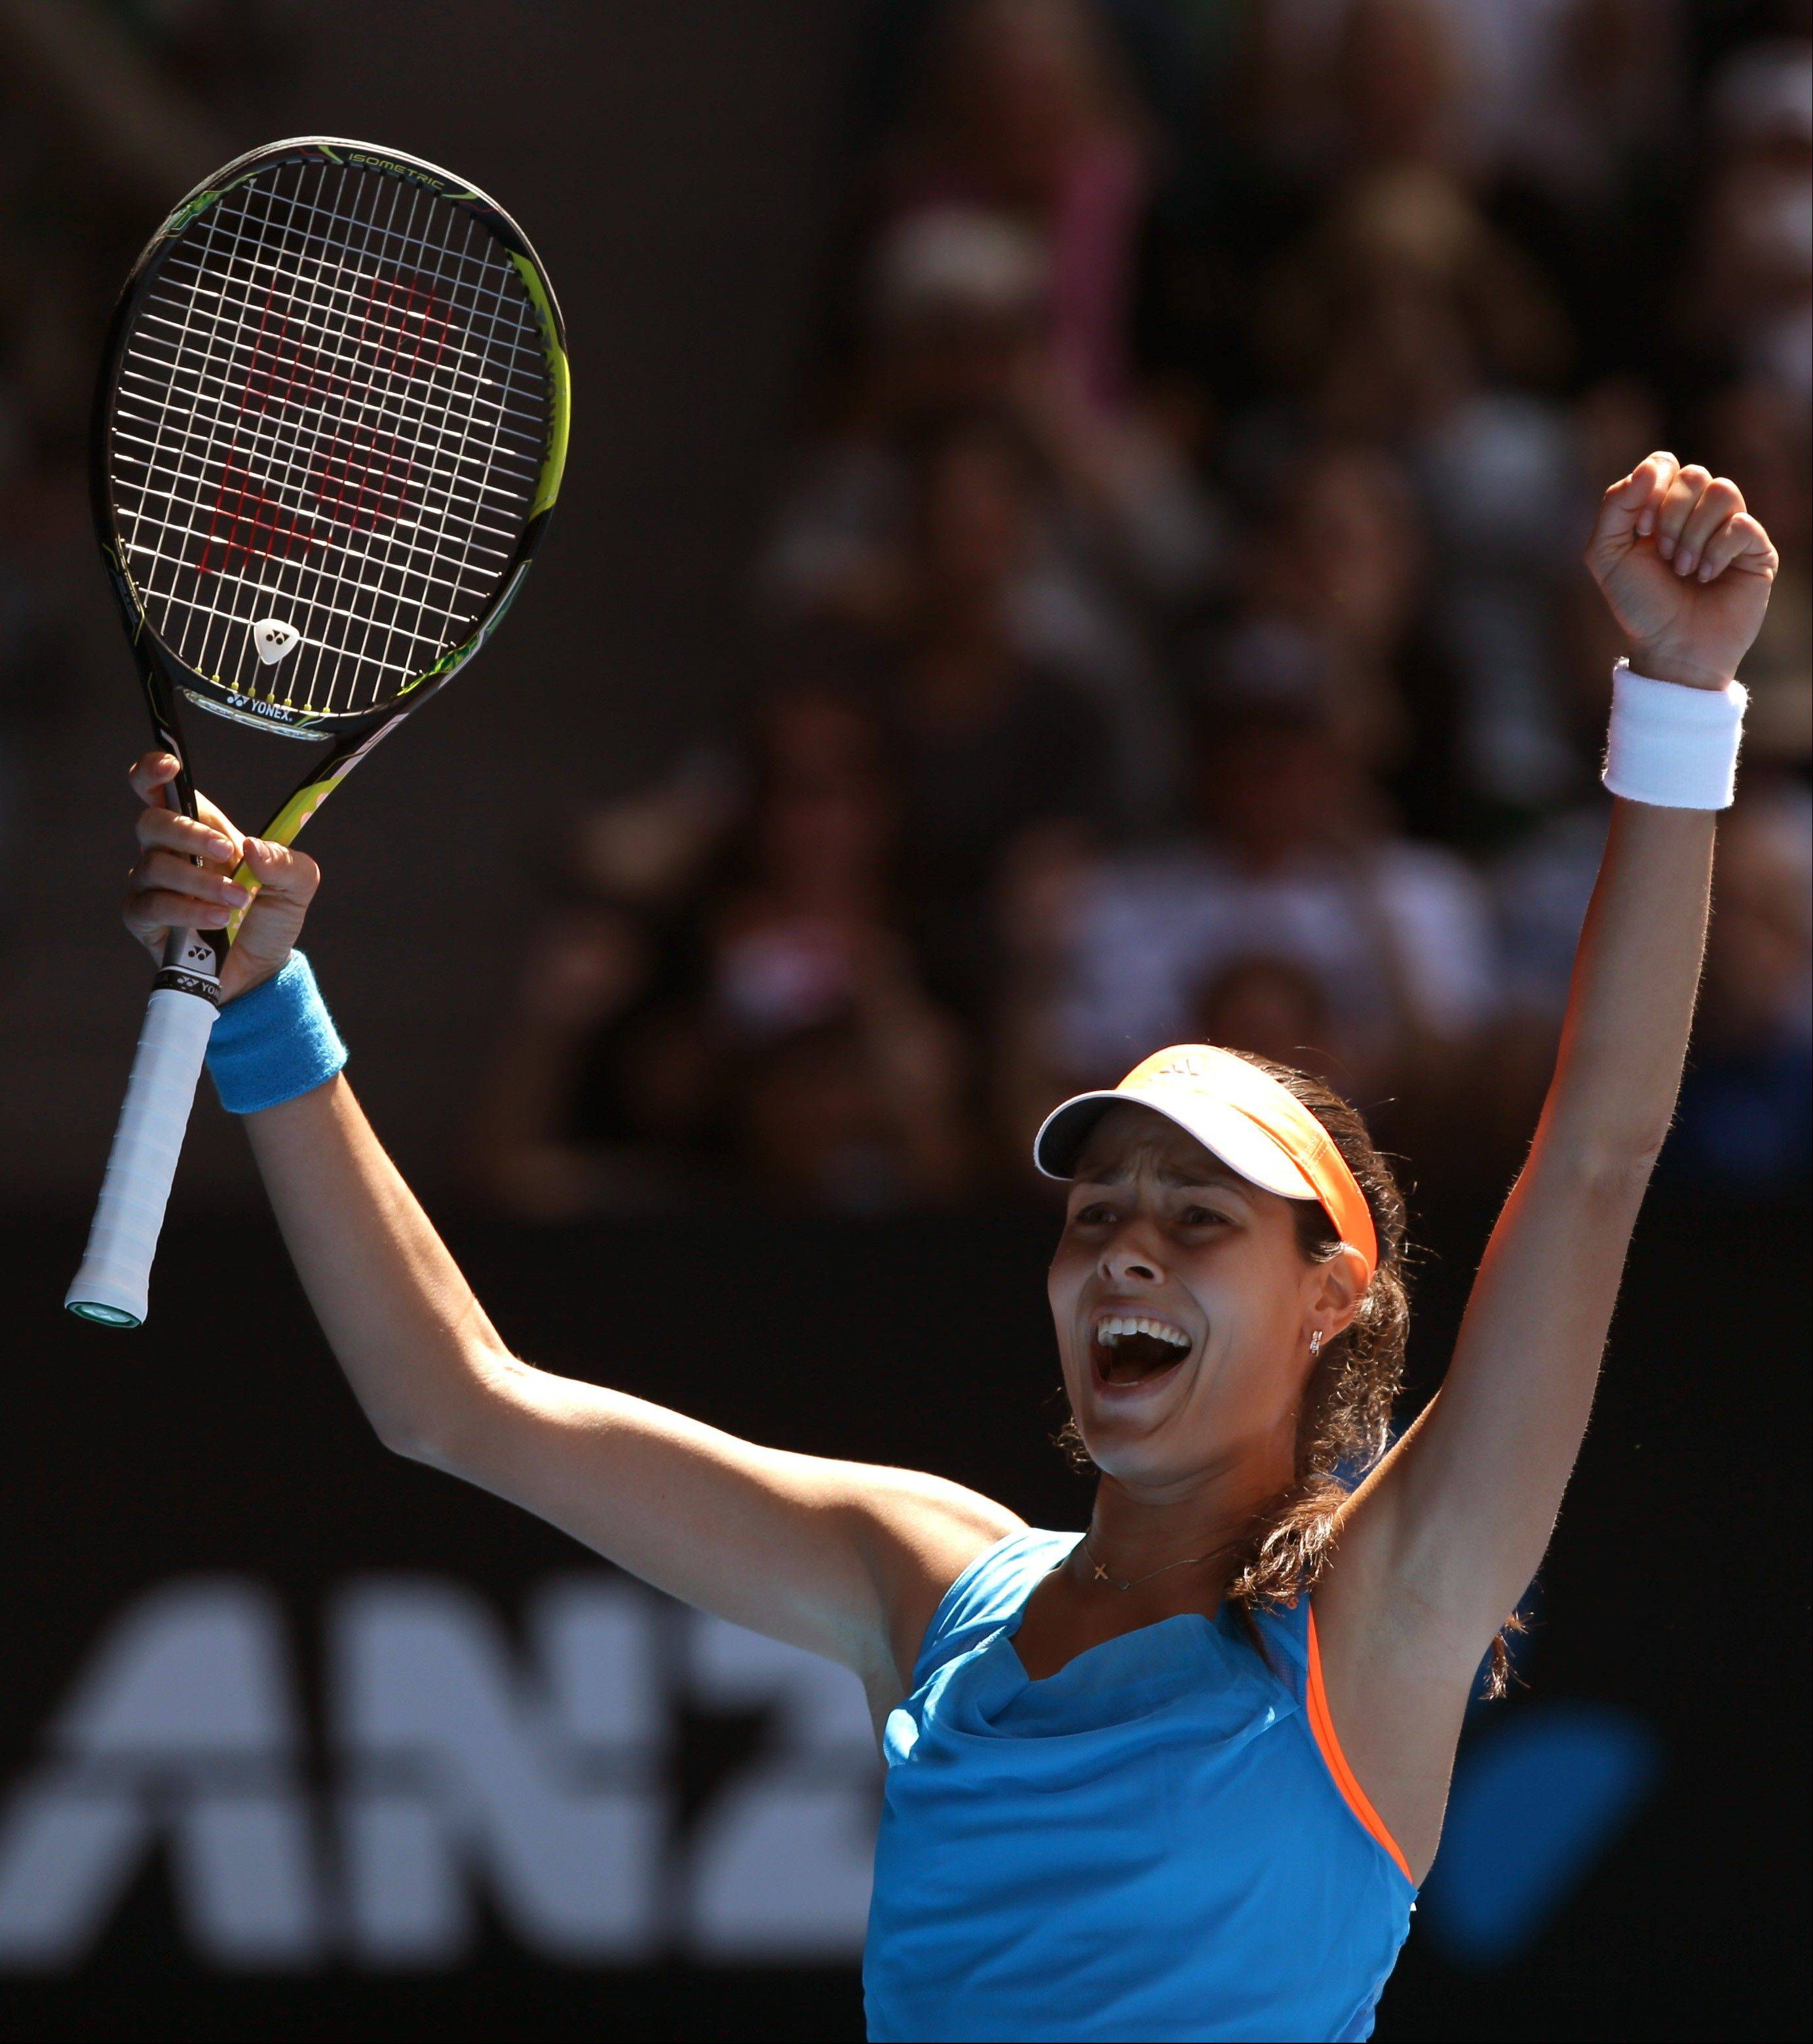 Ana Ivanovic of Serbia celebrates her win over Serena Williams of the U.S. during their fourth round match at the Australian Open tennis championship in Melbourne, Australia.